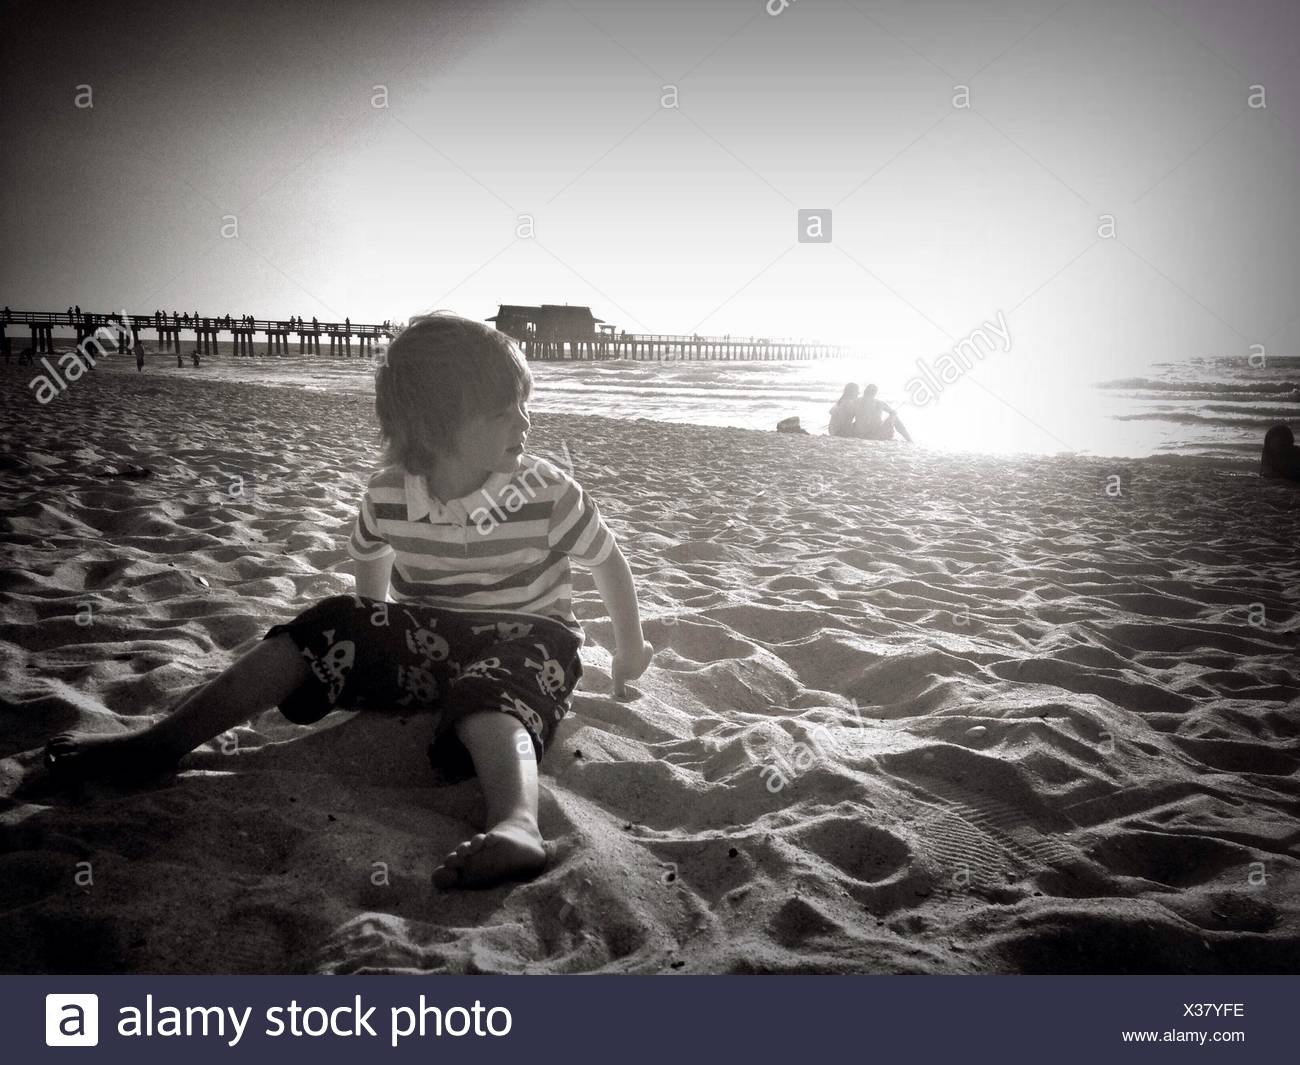 Boy Sitting On Beach - Stock Image